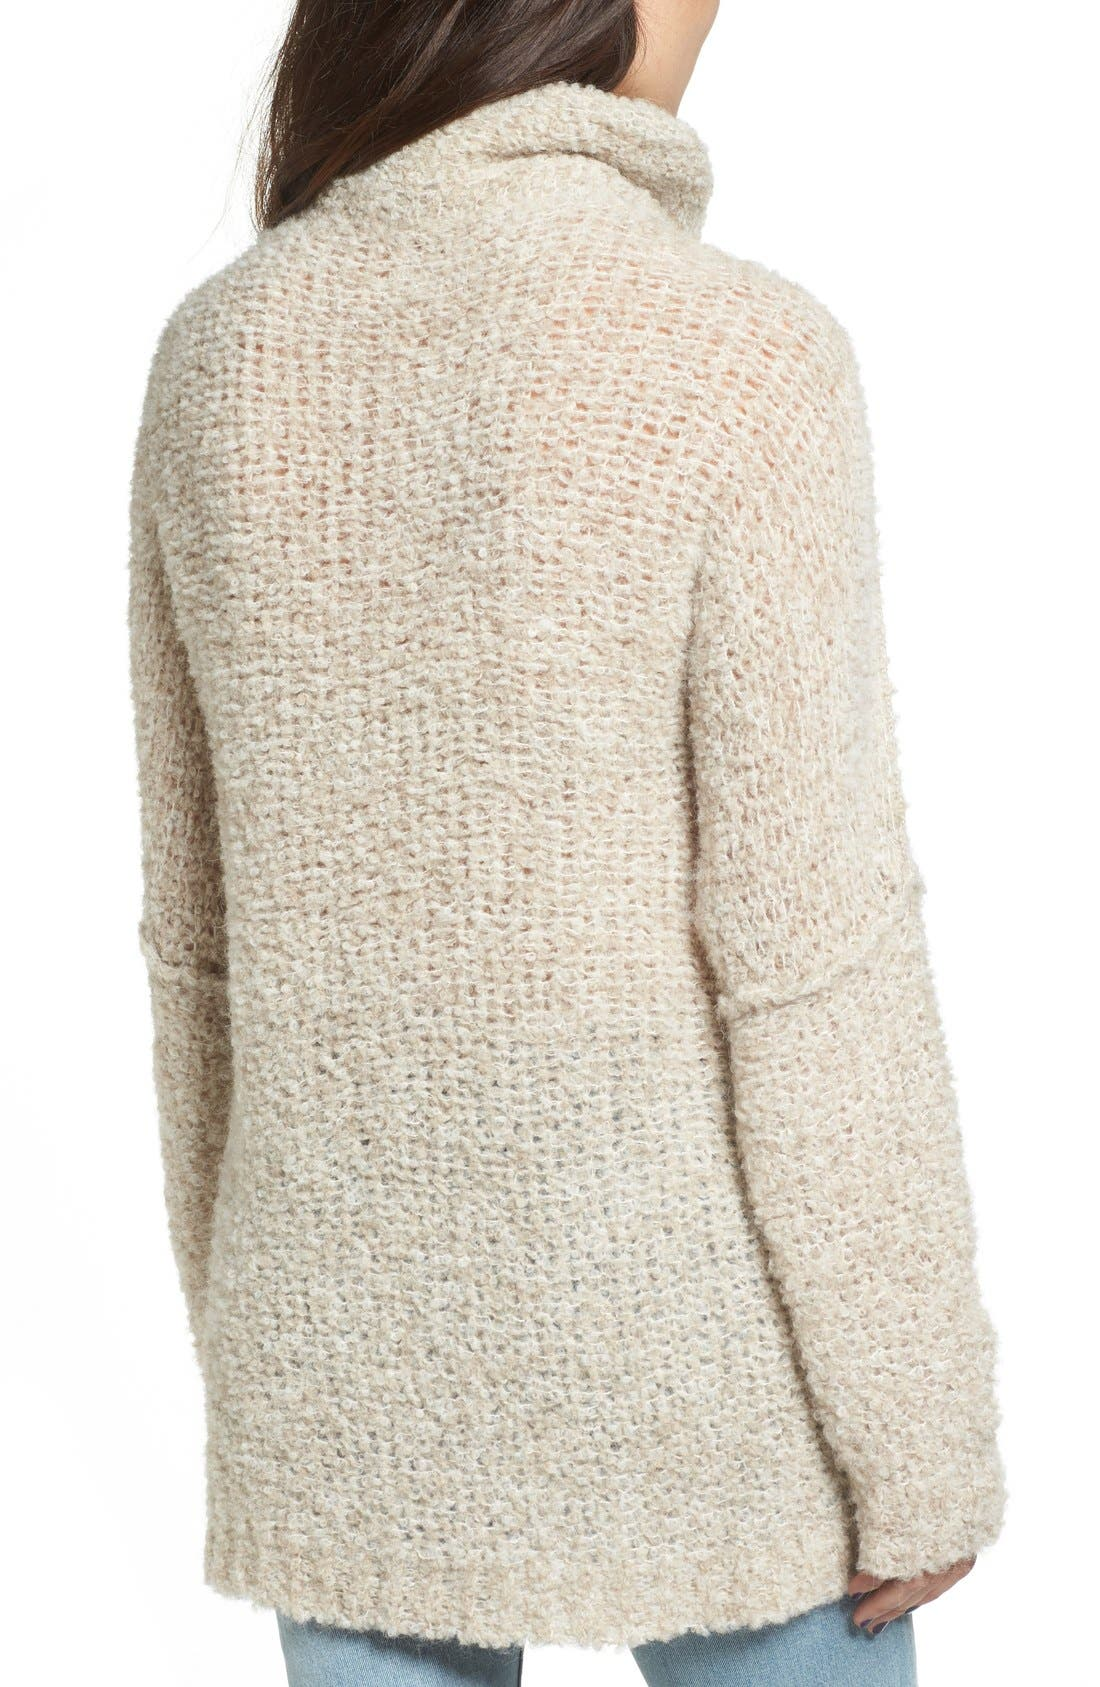 'She's All That' Knit Turtleneck Sweater,                             Alternate thumbnail 10, color,